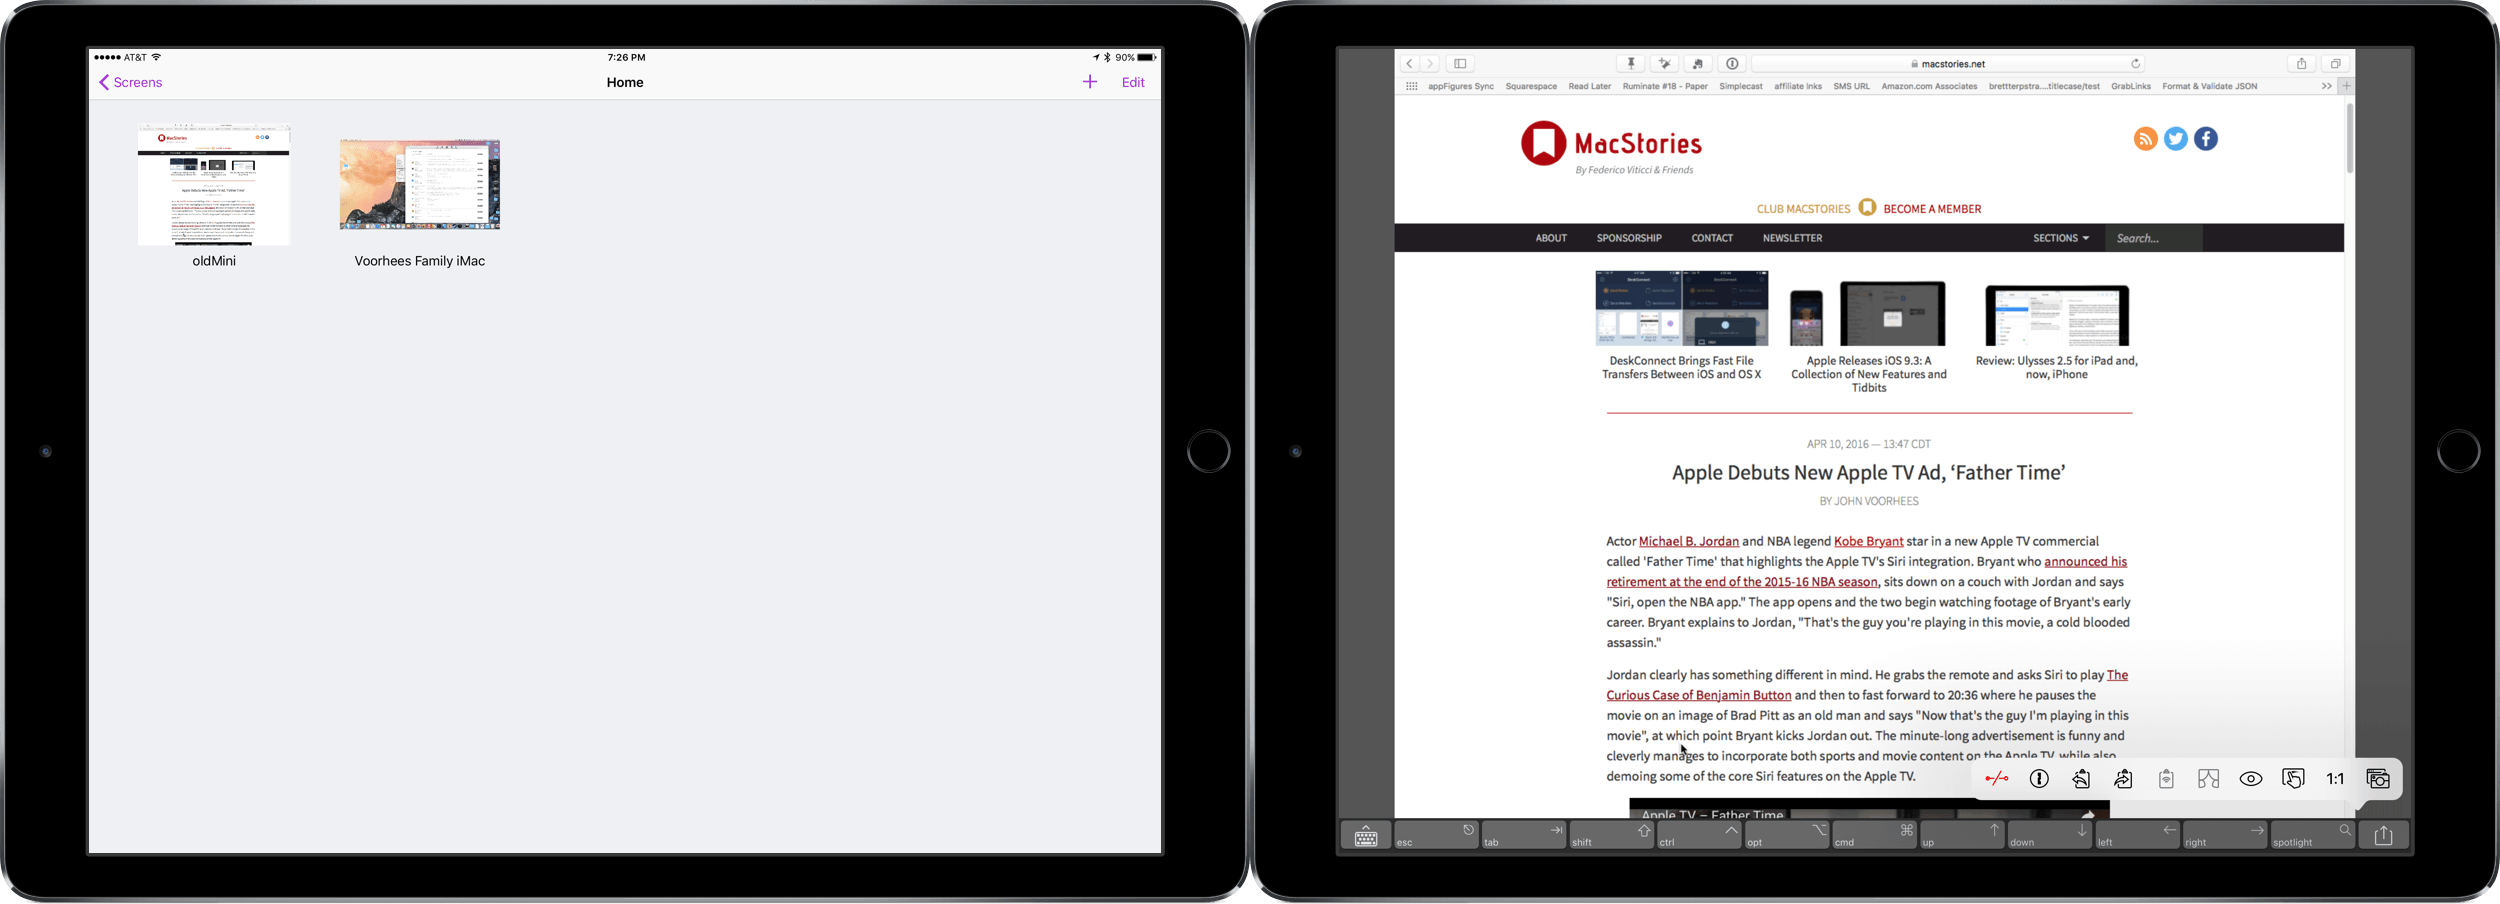 You can organize saved screens into Groups and view them in Split View on iPads that support it.